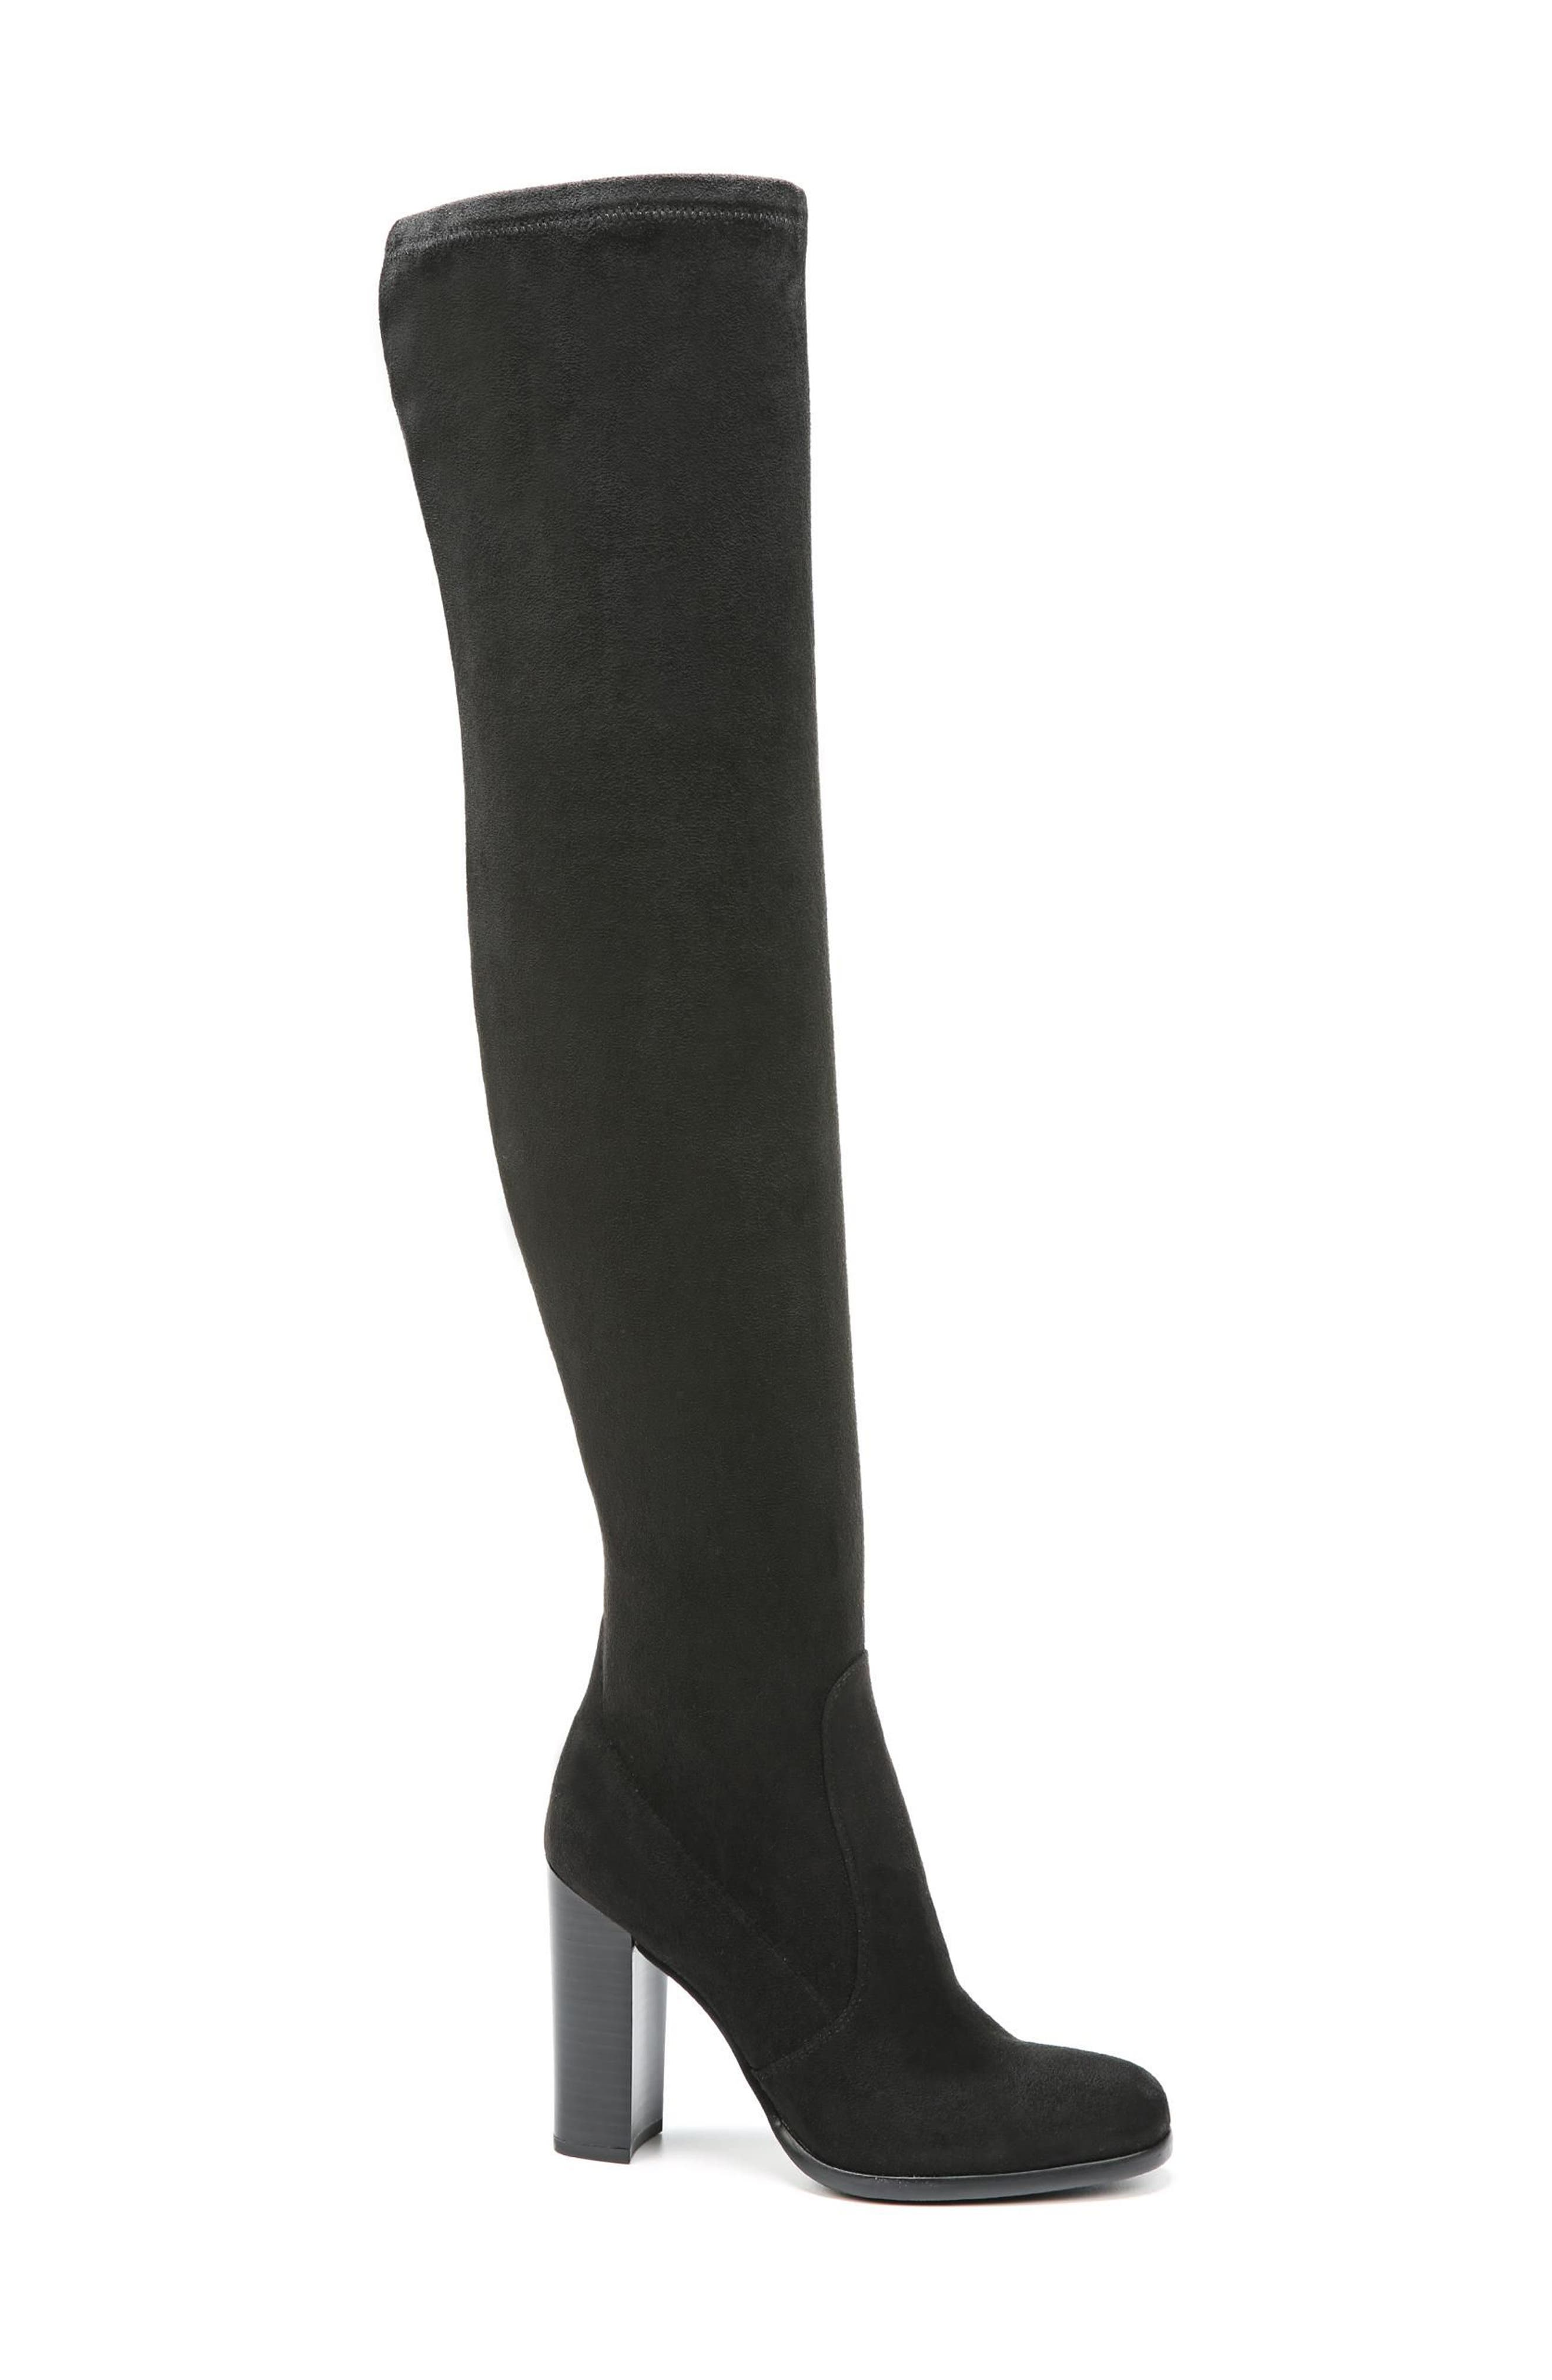 Vena 2 Over the Knee Boot,                             Alternate thumbnail 3, color,                             Black